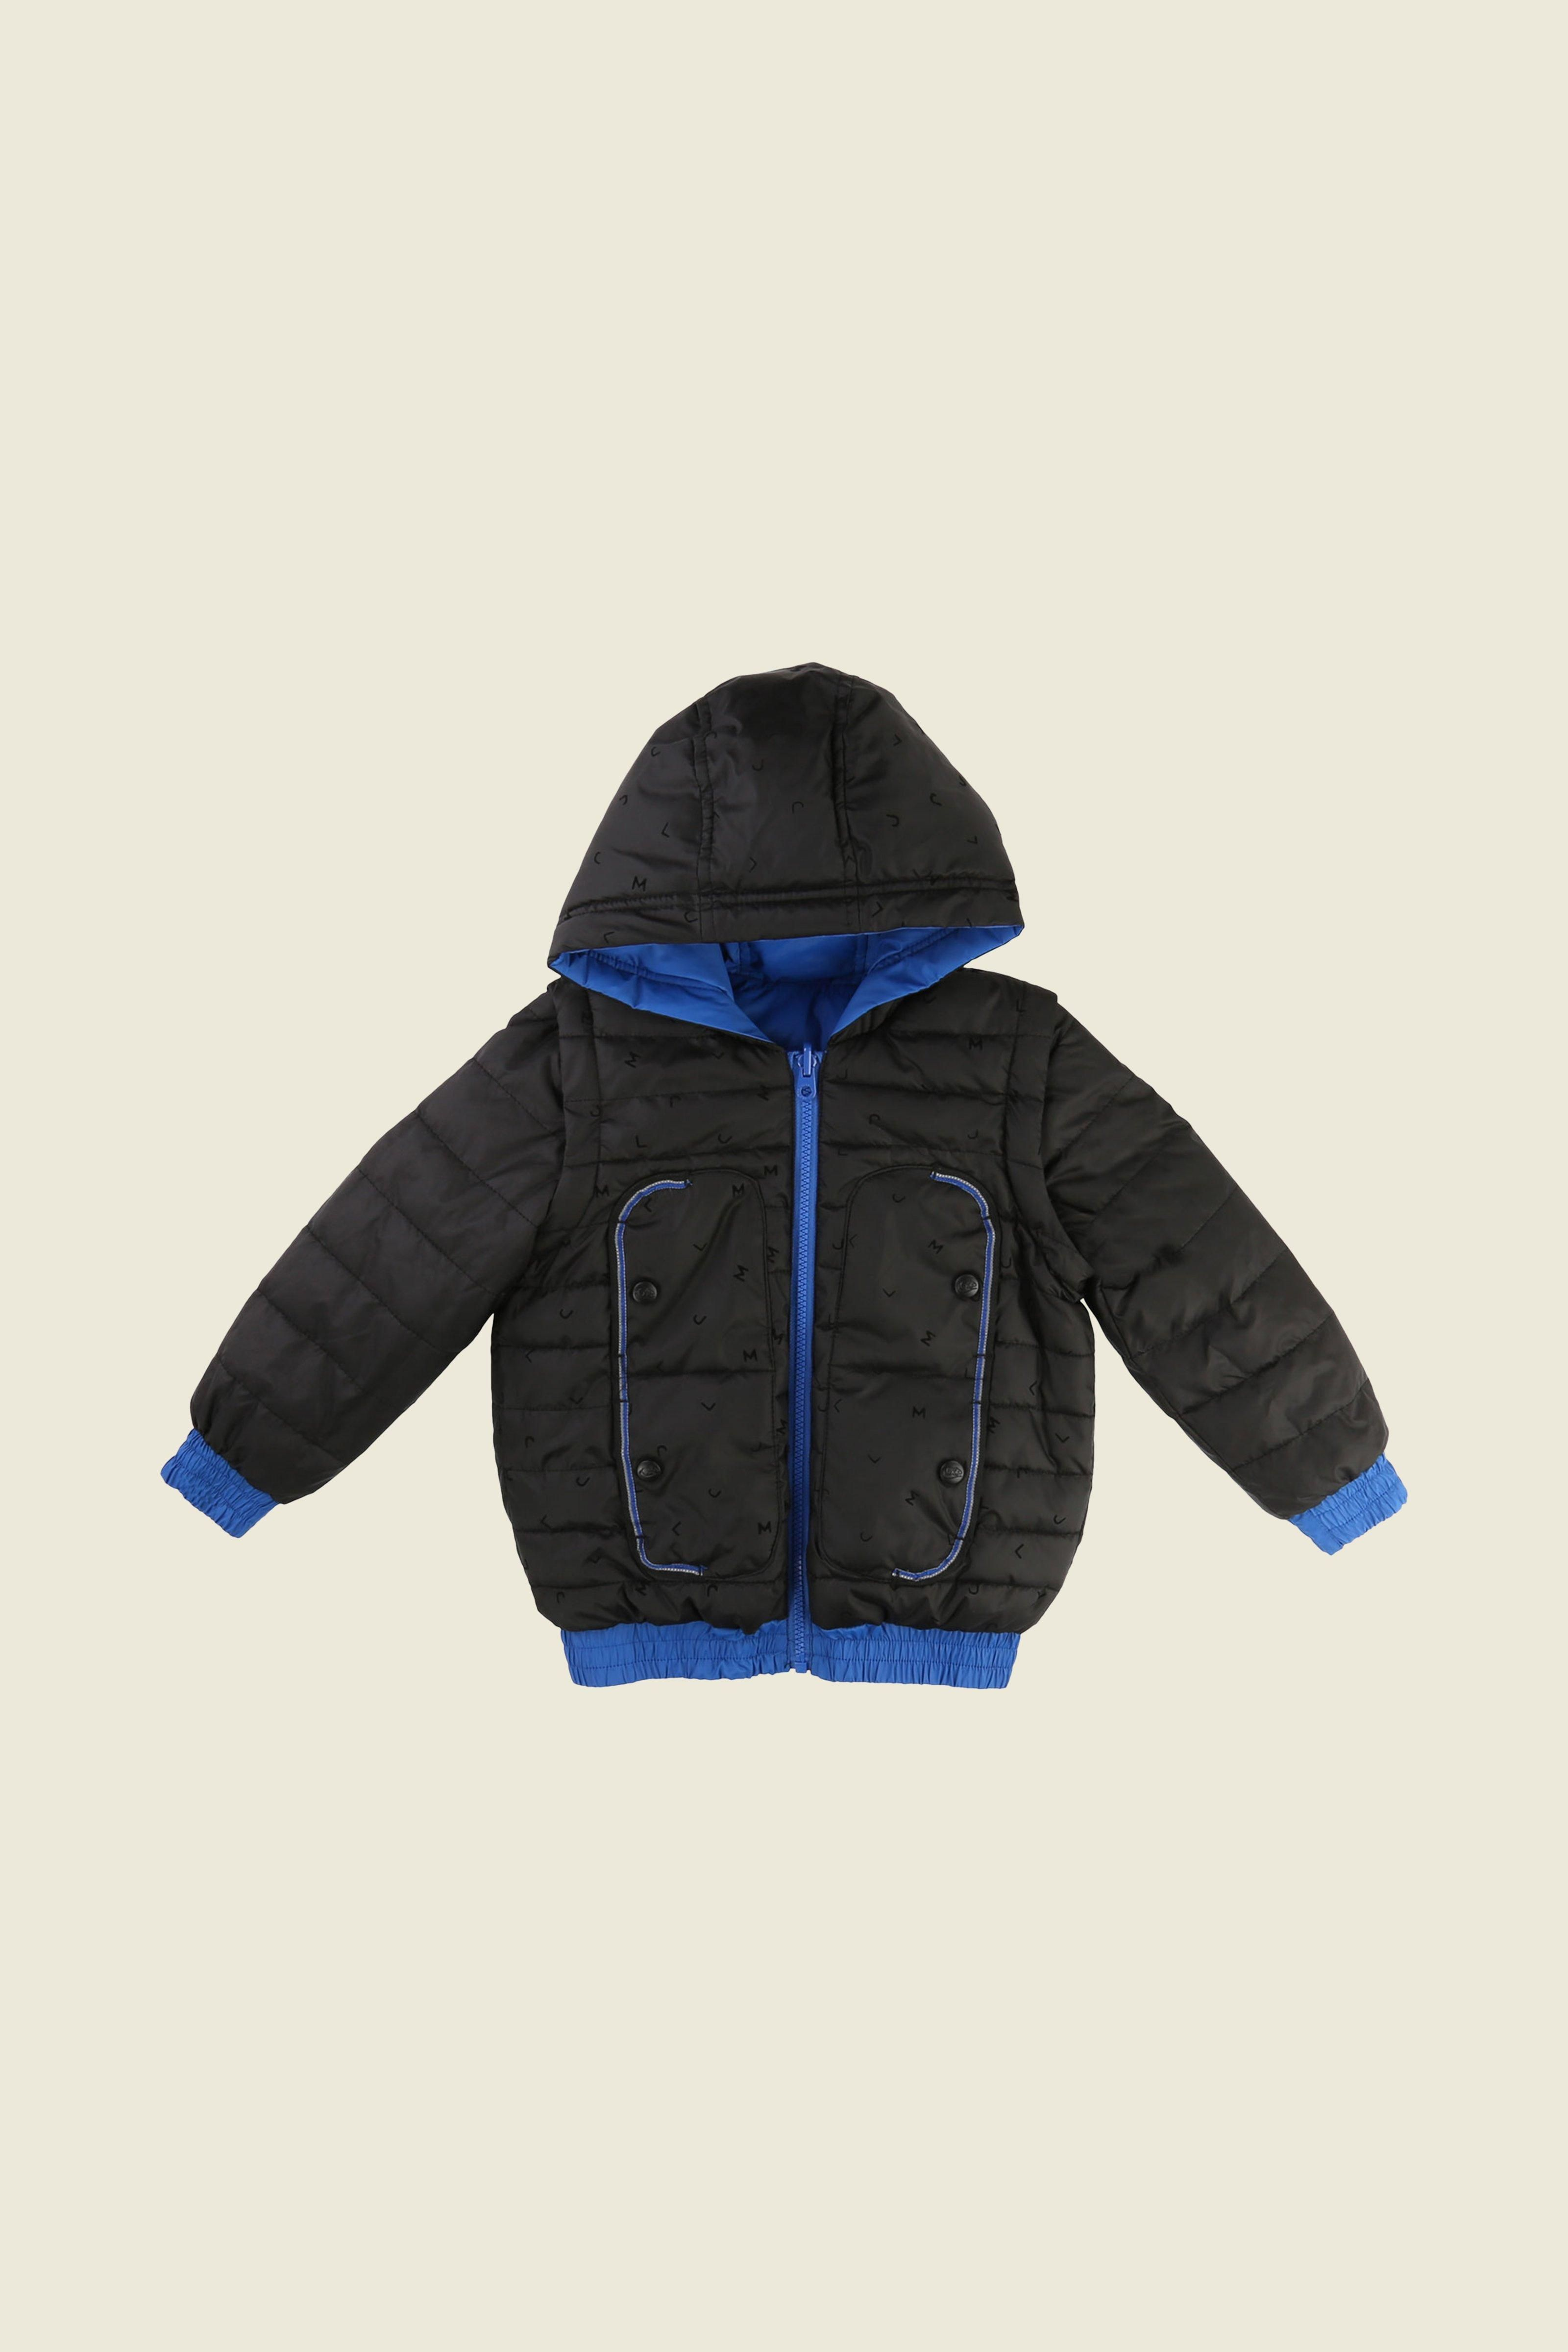 cce5f9f26 The Little Marc Jacobs Reversible Puffer Jacket is like having two ...